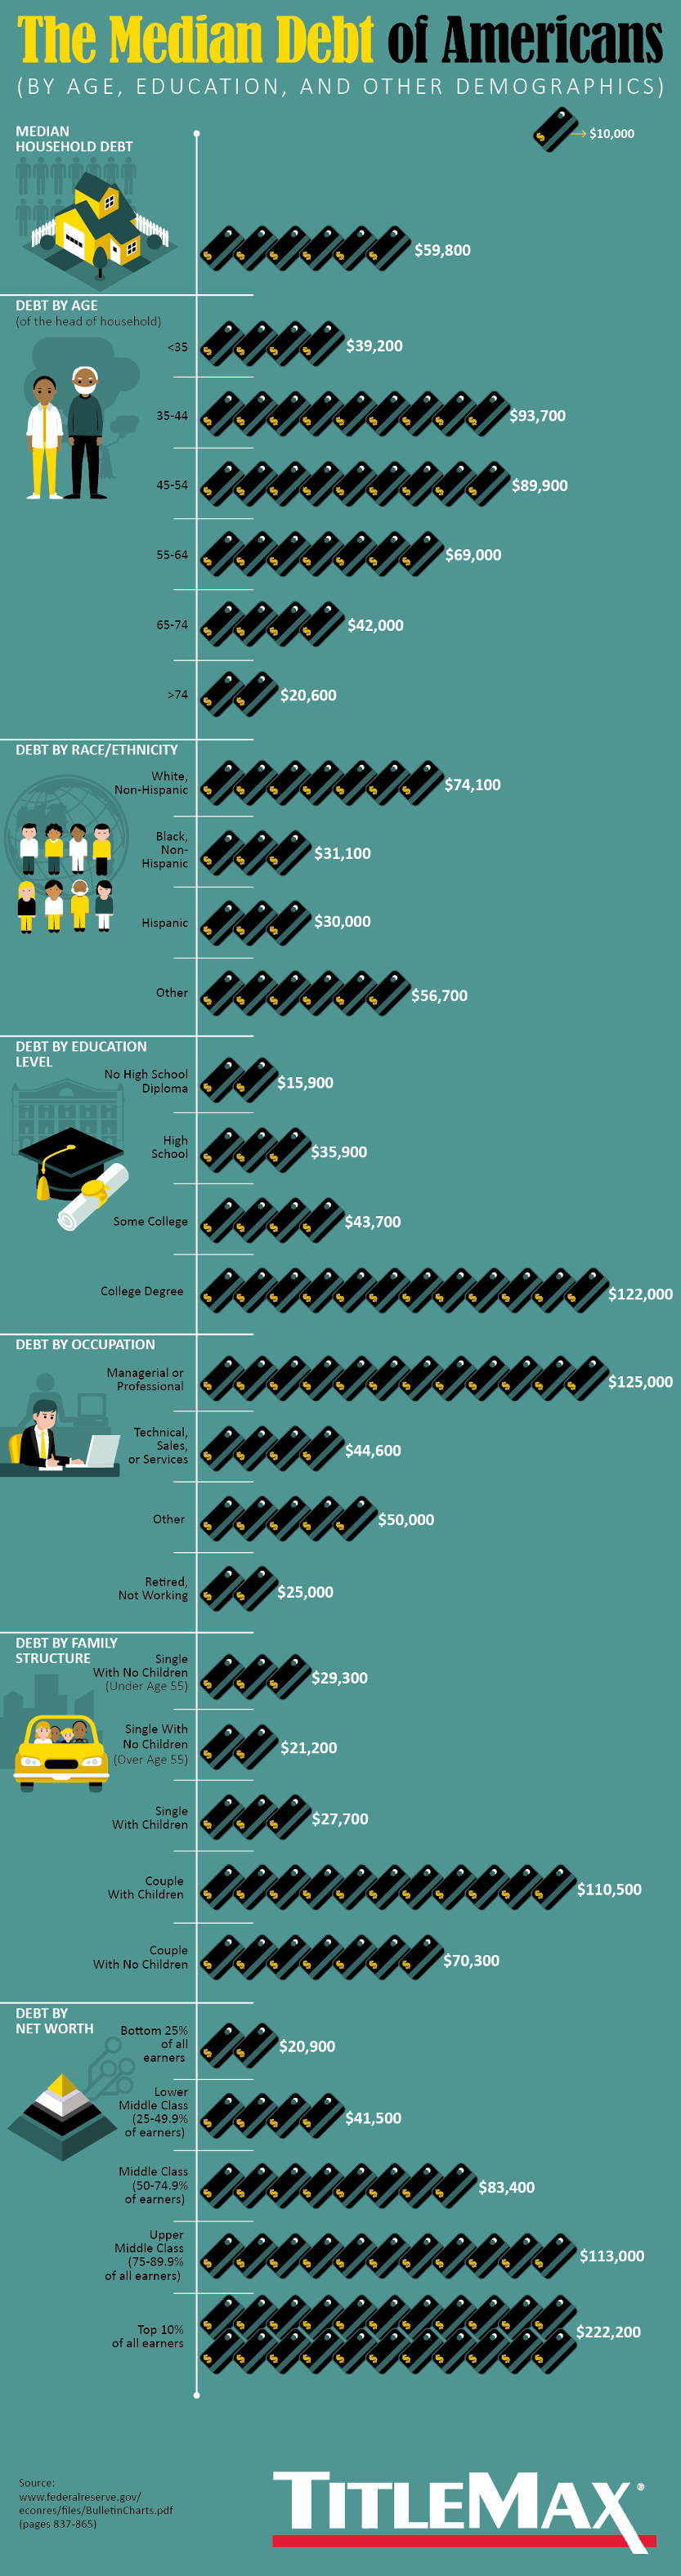 The Median Debt of Americans by Age, Education and Other Demographics #infographic